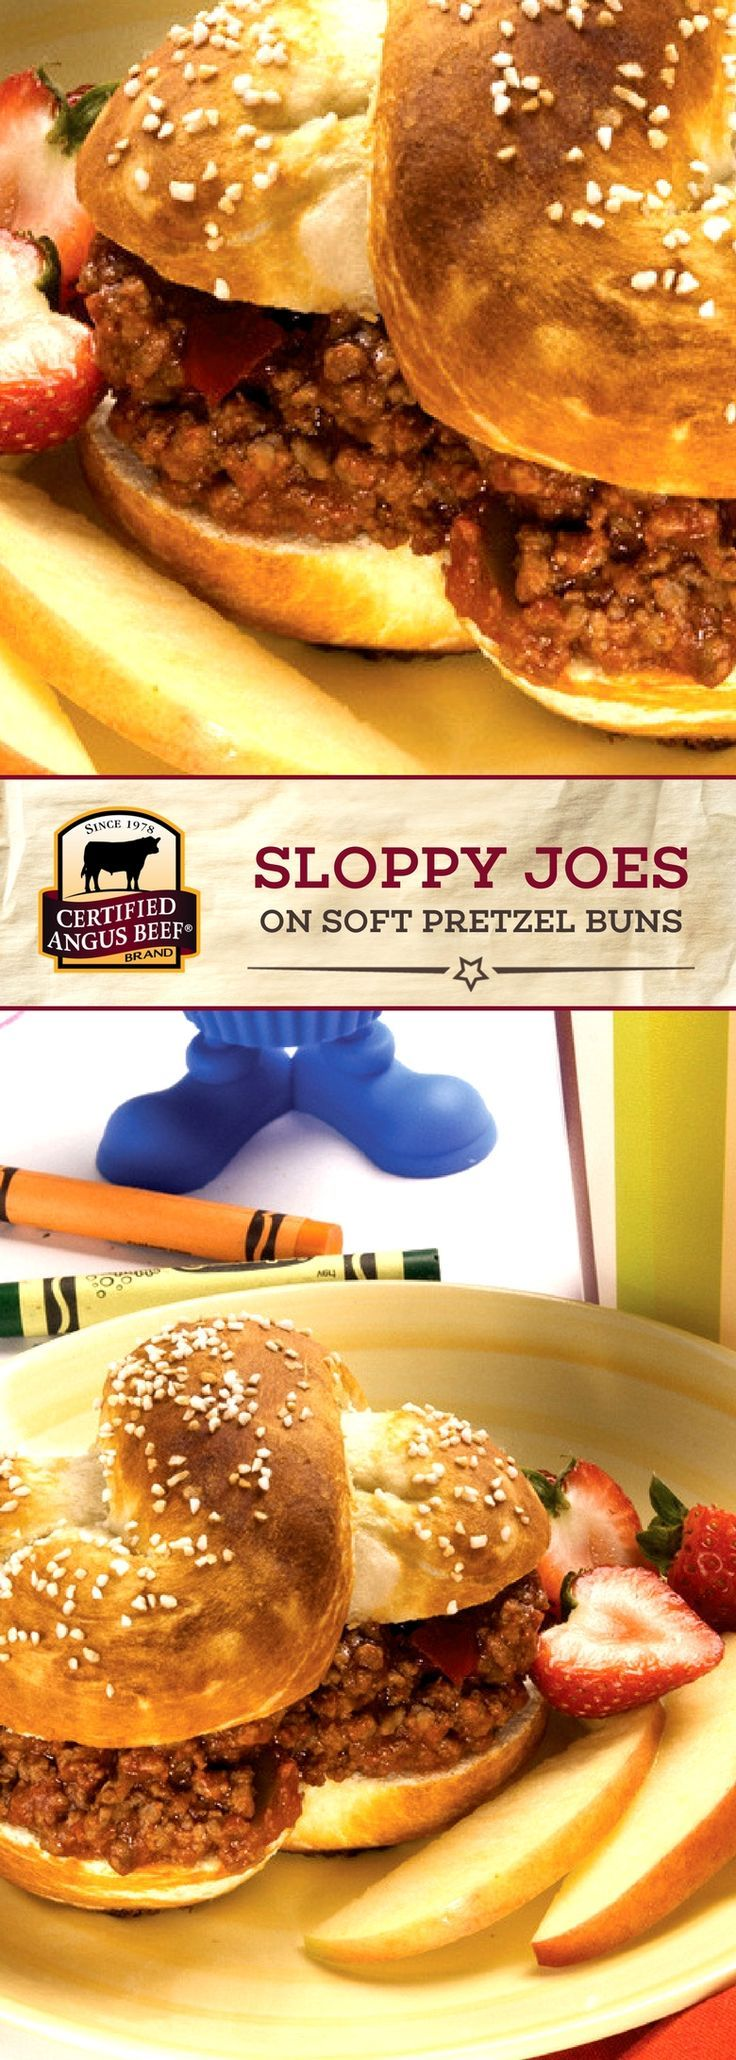 Certified Angus Beef®️️️ brand Sloppy Joes on Soft Pretzel Buns are so DELICIOUS! This sloppy joe recipe is PACKED with flavor from the best ground chuck and seasoning mix, and uses HOMEMADE pretzel buns! #bestangusbeef #certifiedangusbeef #beefrecipe #easyrecipes #kidsrecipes